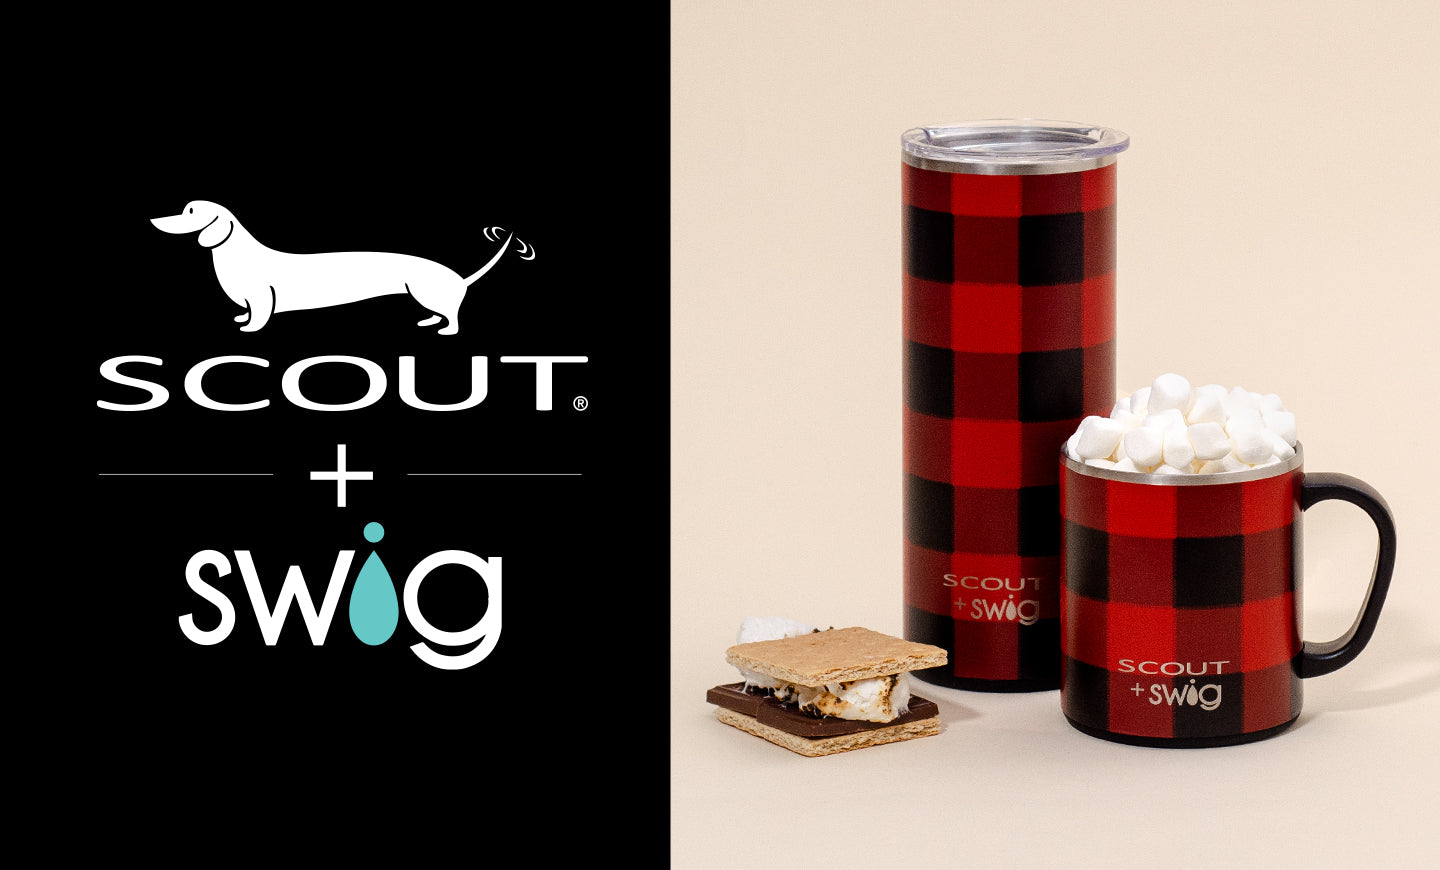 SCOUT + Swig Life